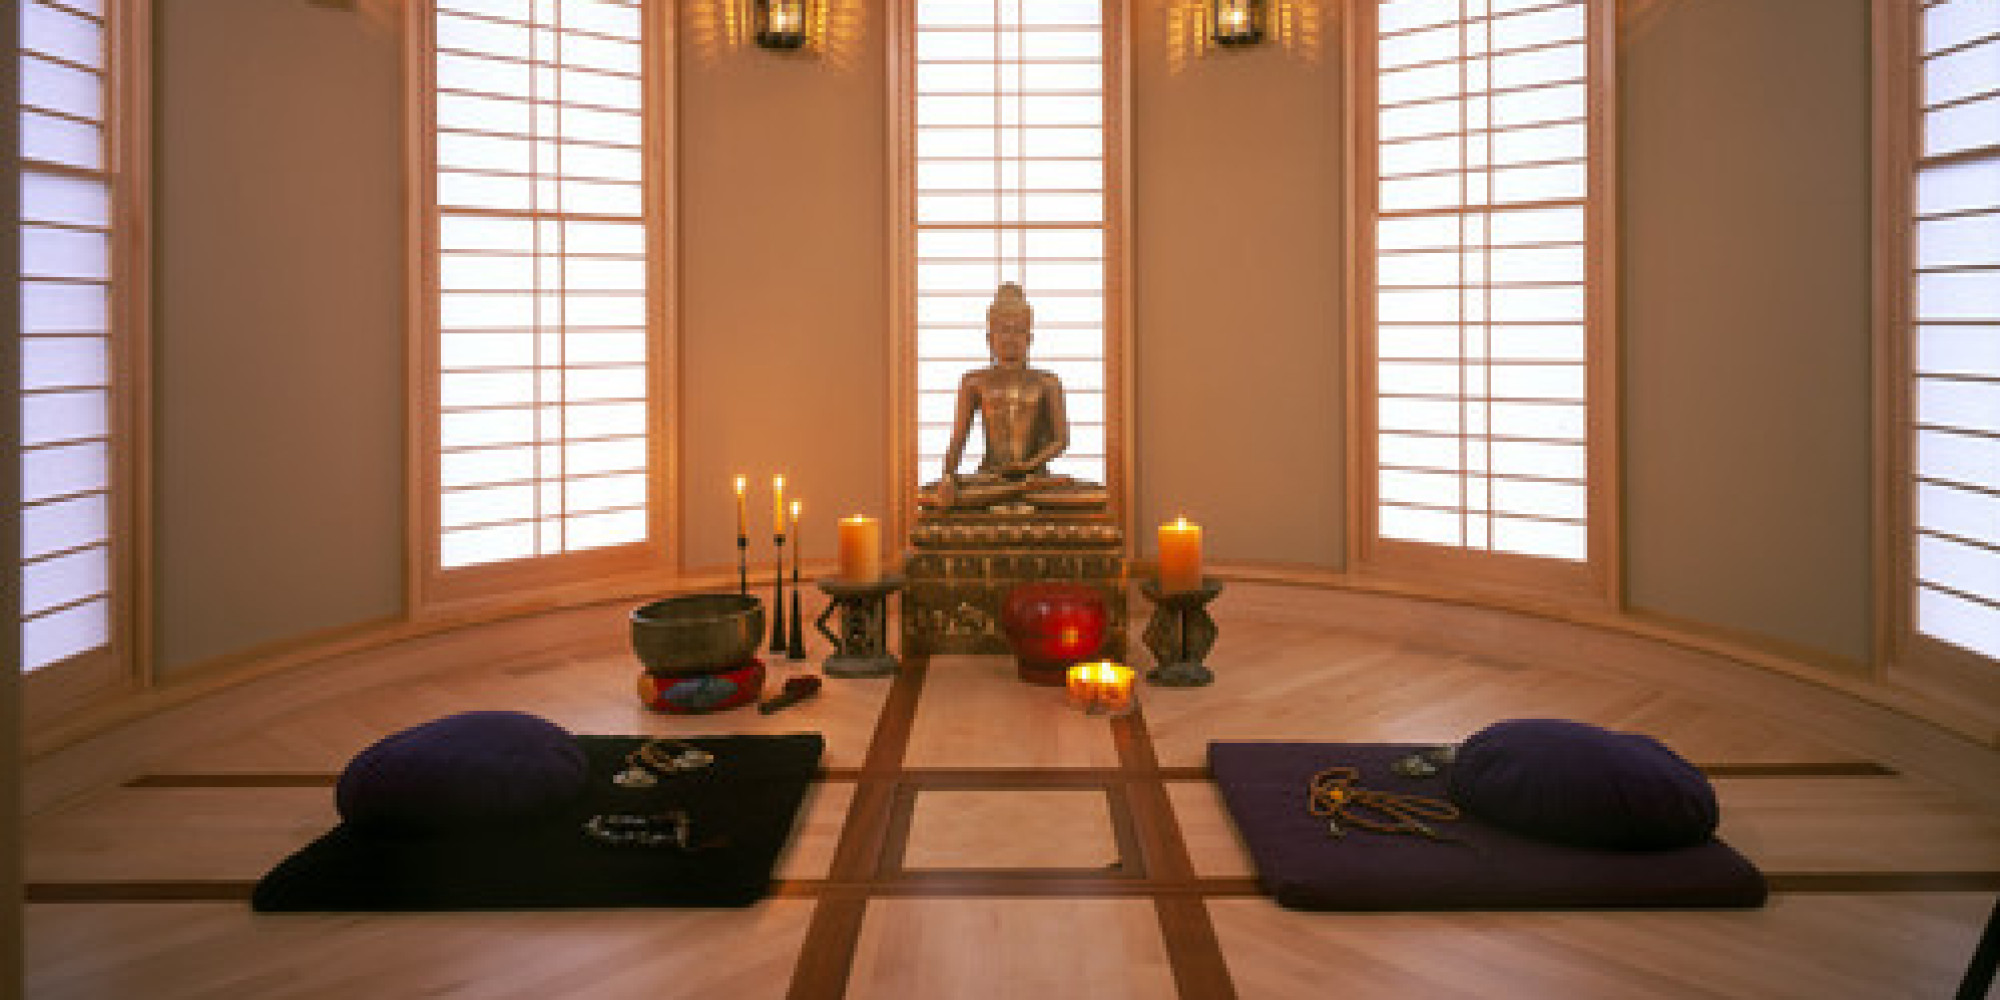 7 spaces that would make great meditation rooms photos huffpost How to design a room